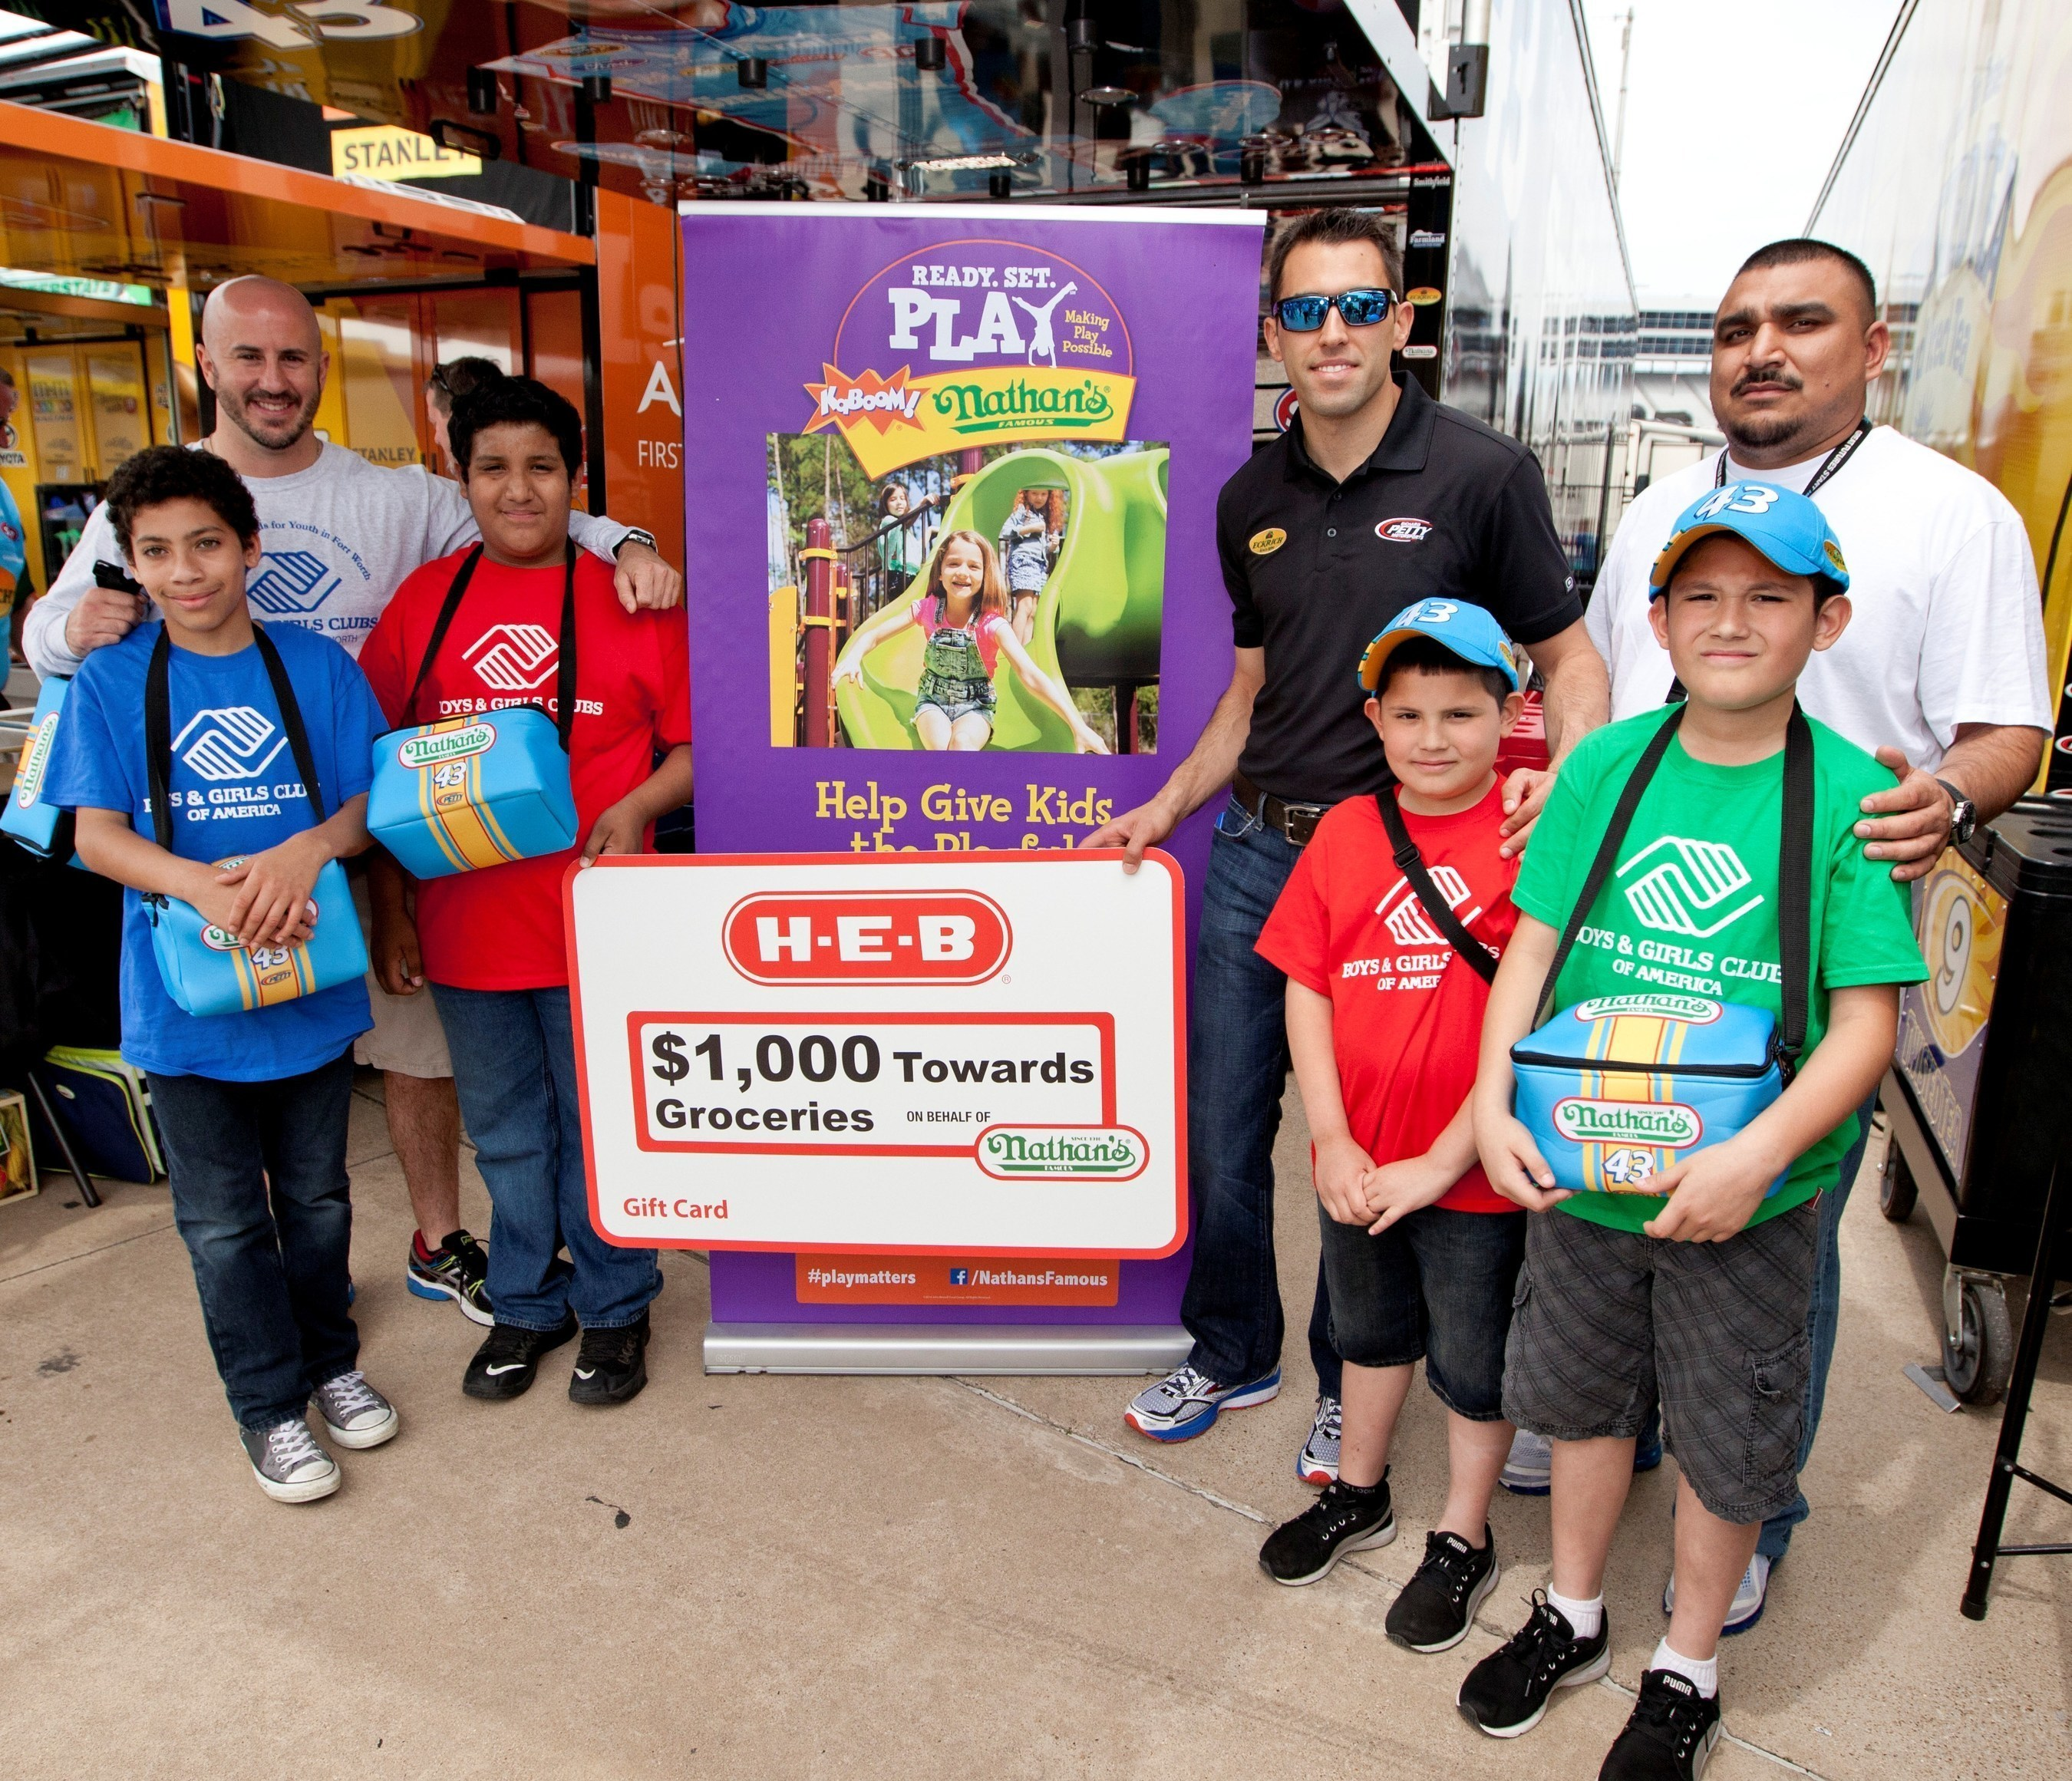 Fort Worth Charity Honored By Nathan's Famous, H-E-B And